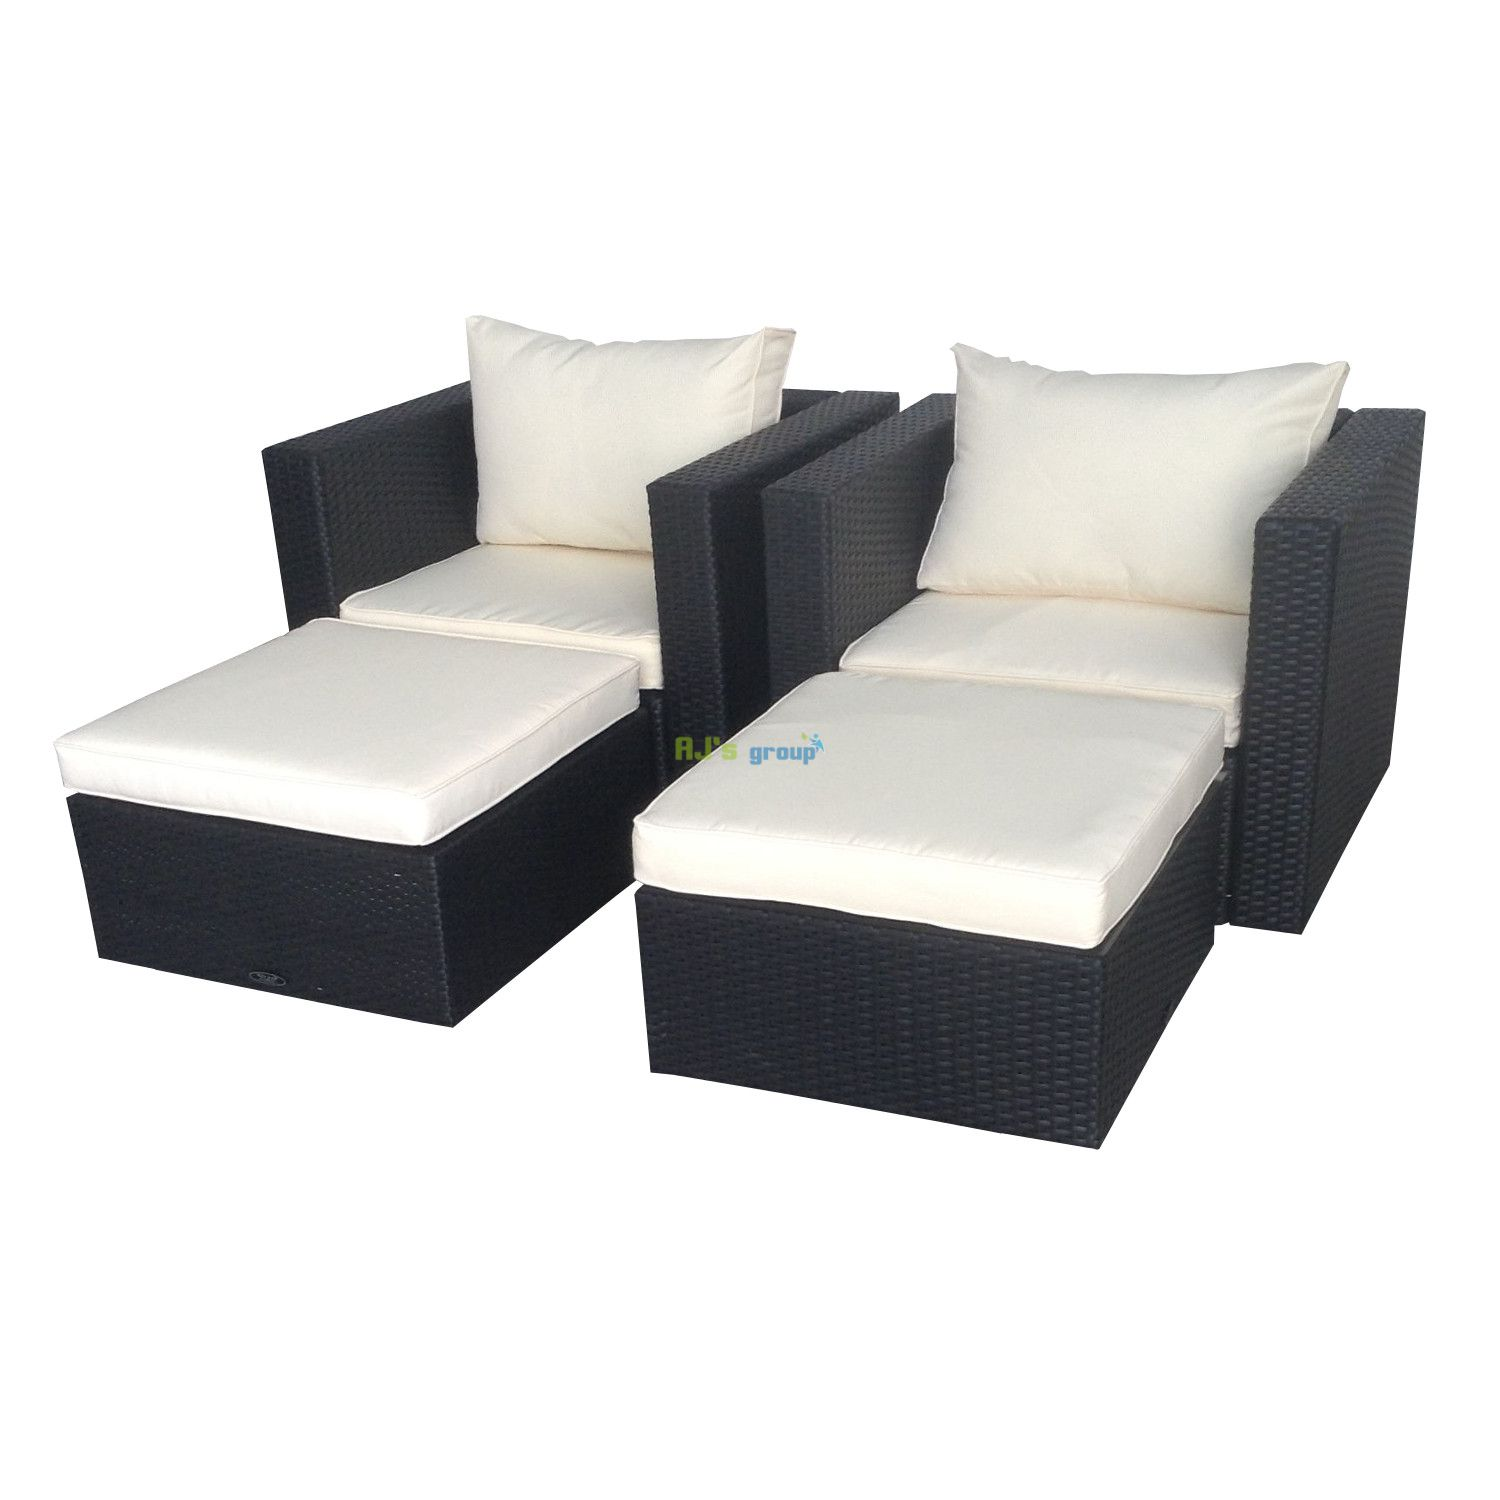 poly rattan gartenm bel madison alu garnitur lounge garten sitzg. Black Bedroom Furniture Sets. Home Design Ideas